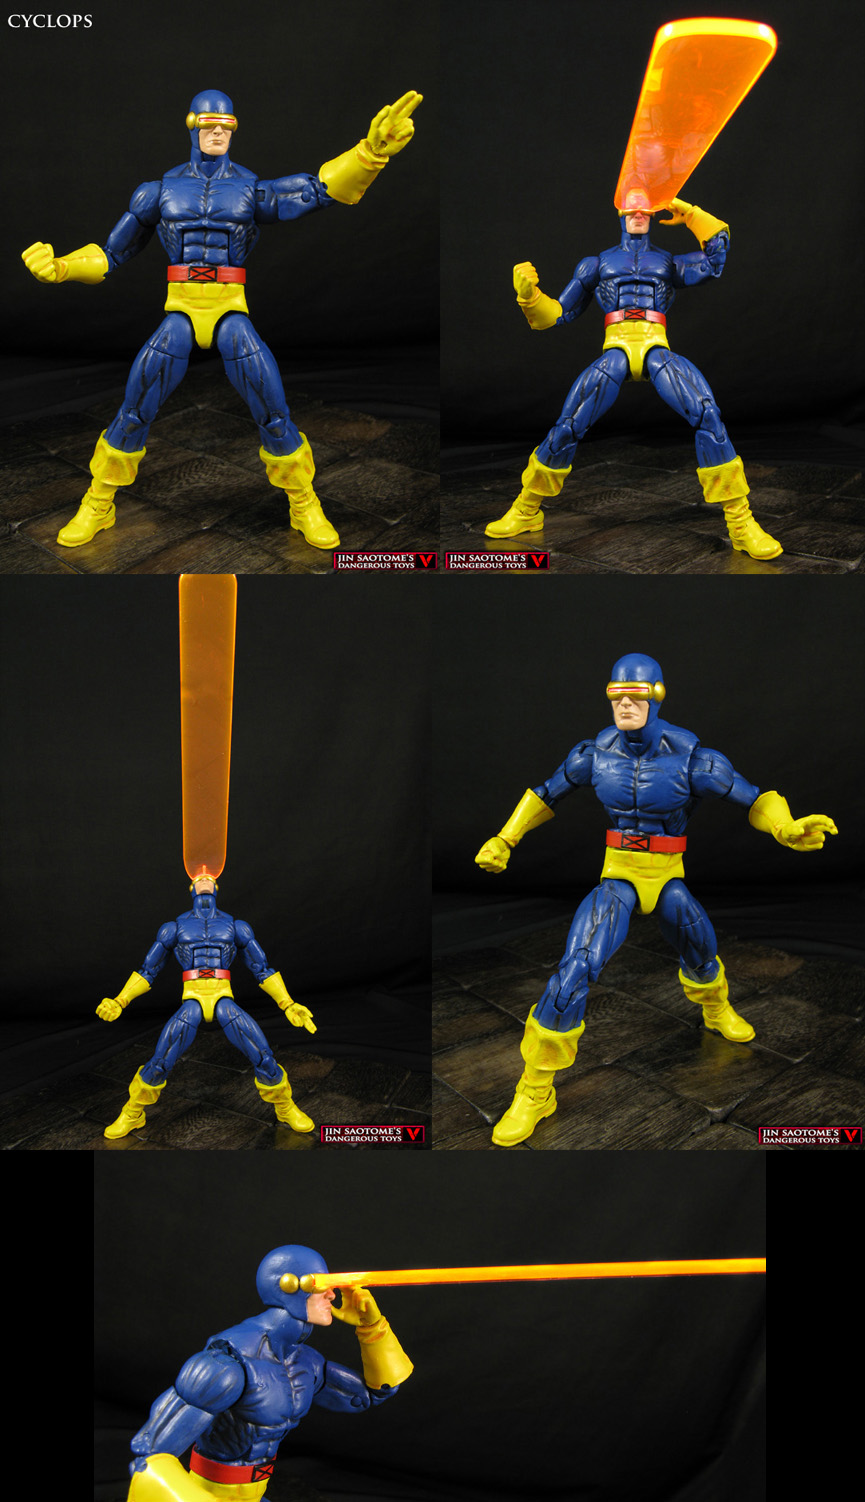 Custom Cyclops Legends figure with Optic Blast by Jin-Saotome